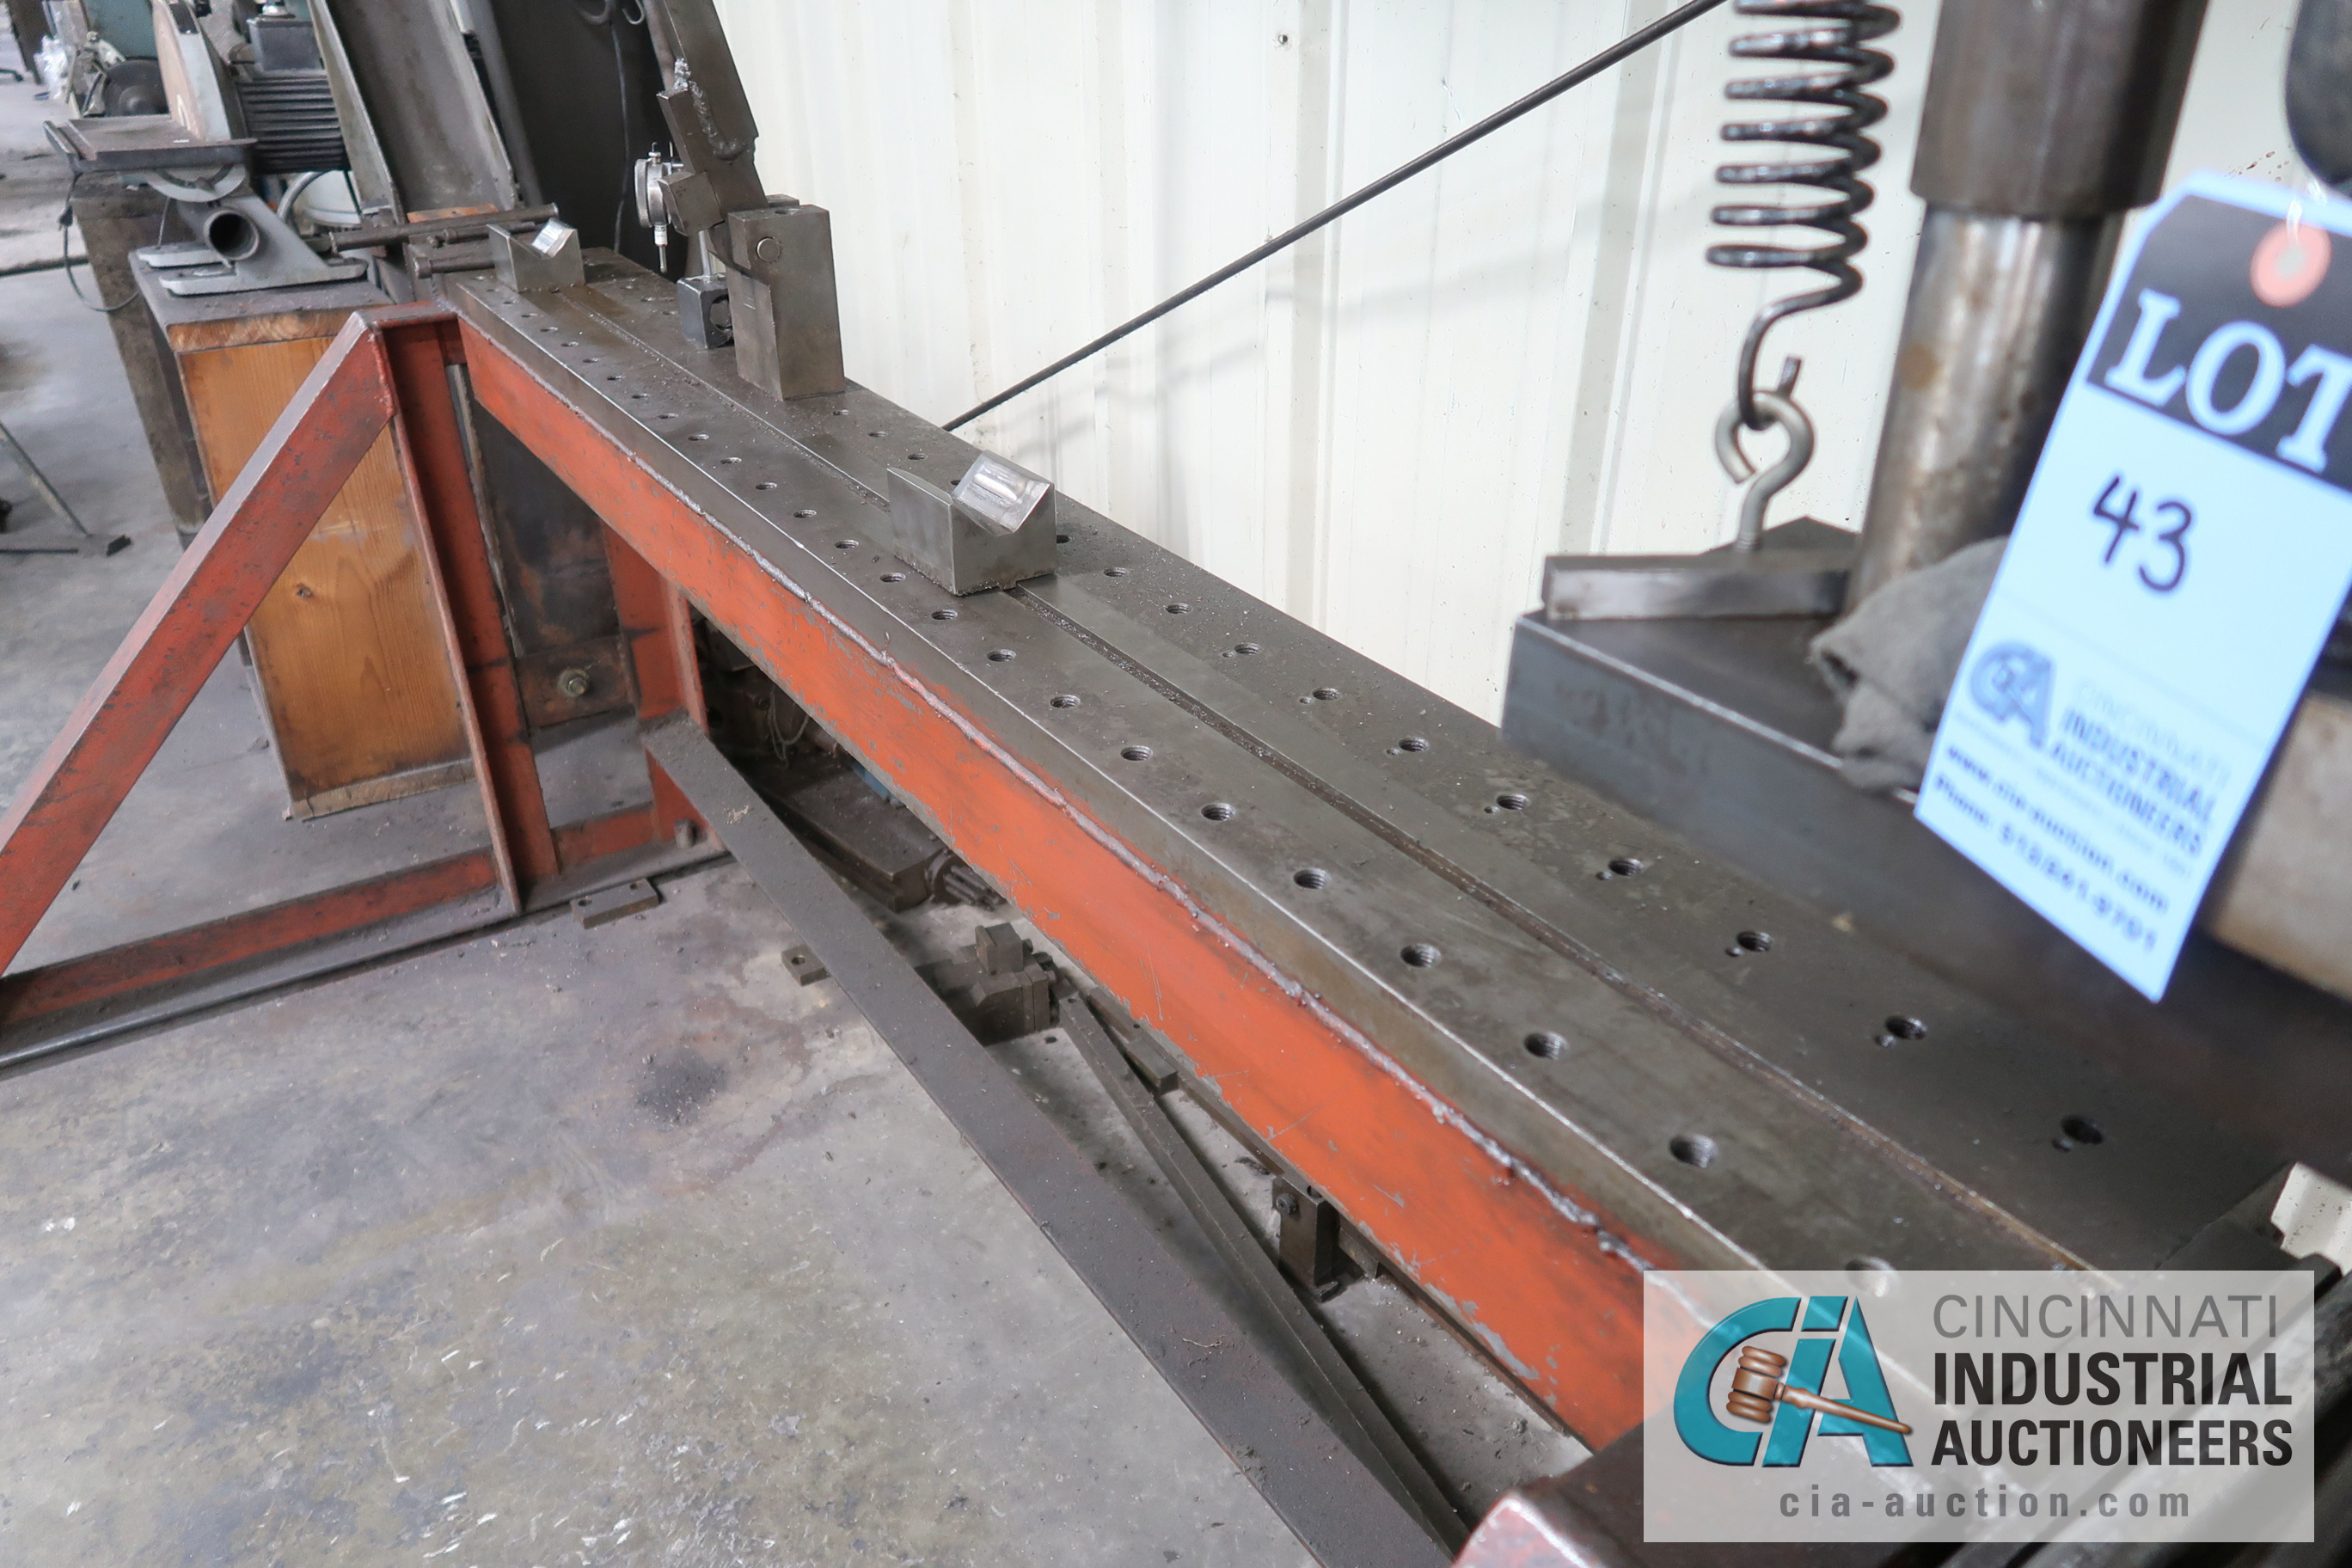 Lot 43 - 30 TON SHOP BUILT MANUAL HYDRAULIC SHAFT STRAIGHTENER WITH CAPACITY UNKNOWN MANUAL HAND